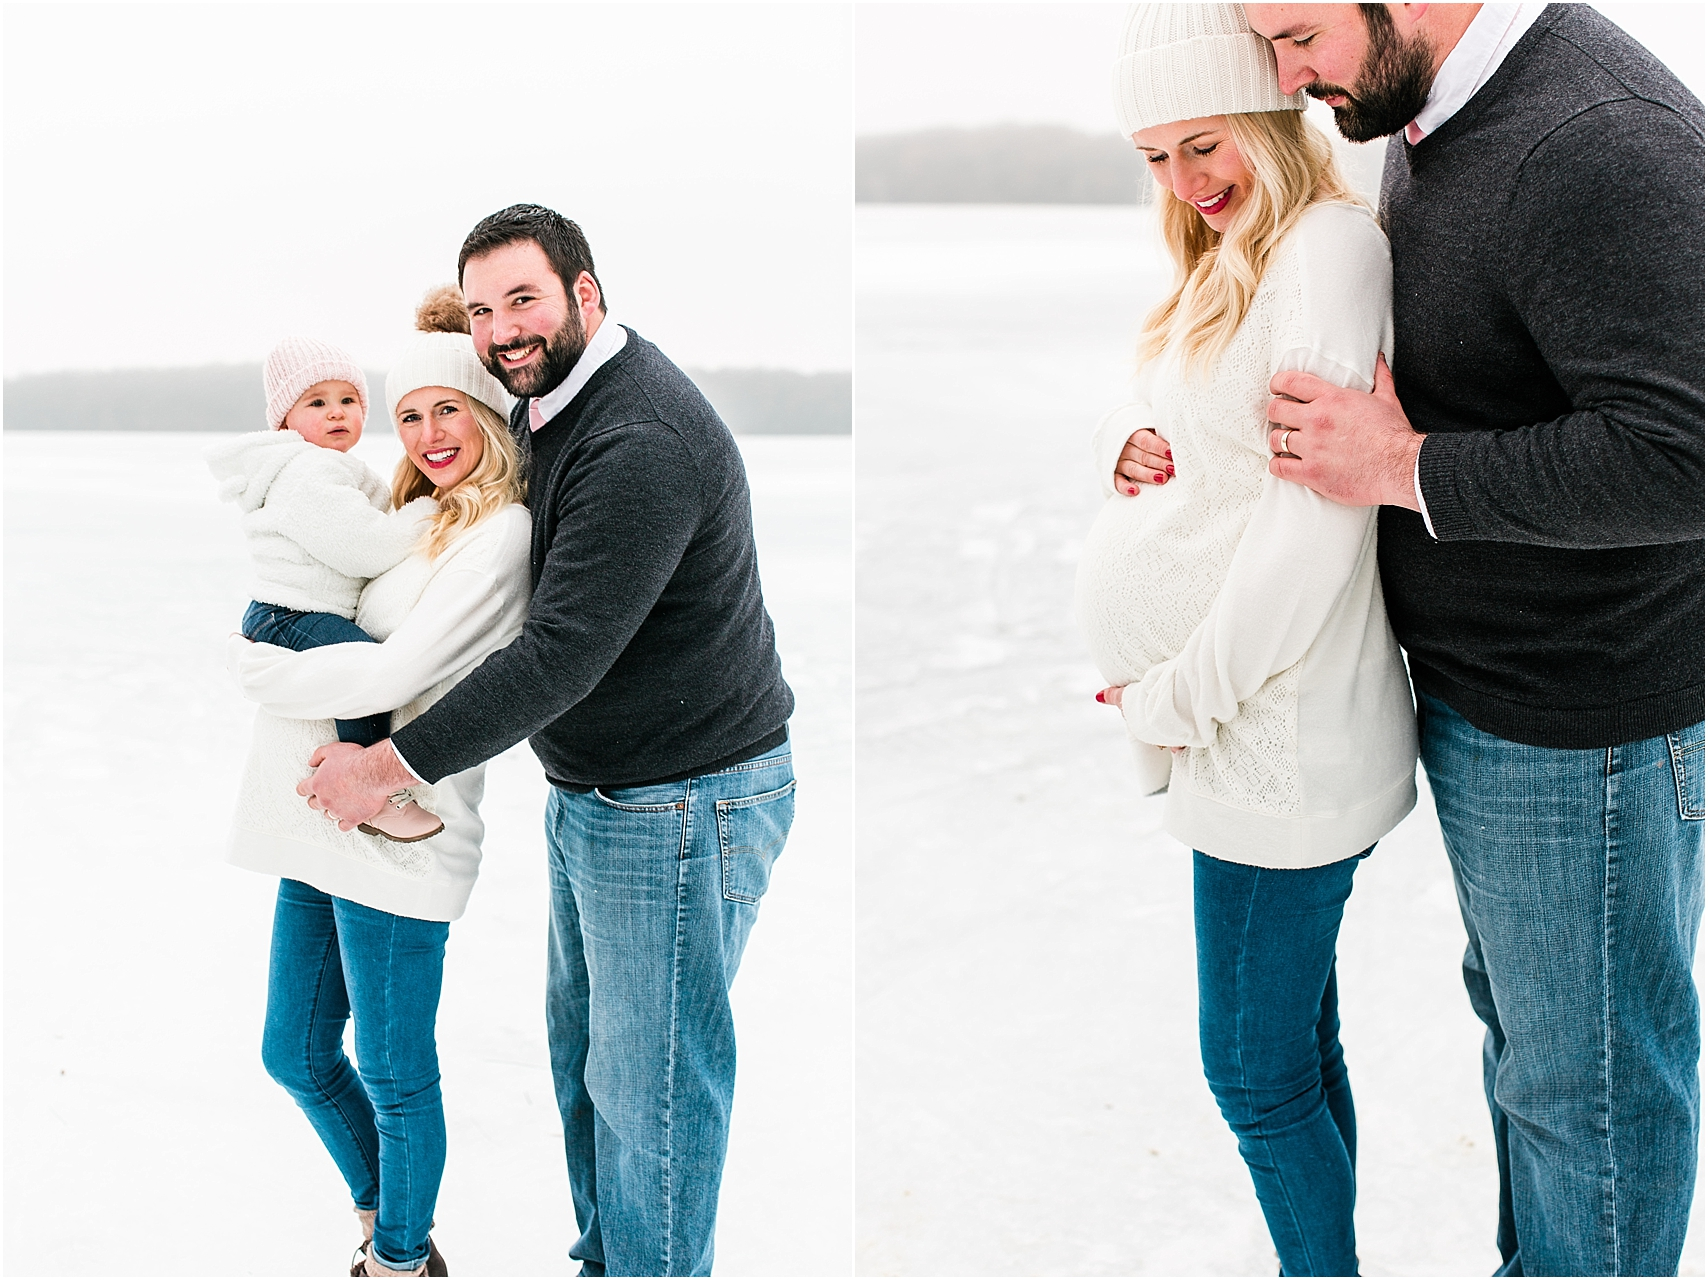 Minnesota winter maternity session Lake Ann Park Chanhassen photographed by Mallory Kiesow, Minnesota maternity photographer_005.jpg